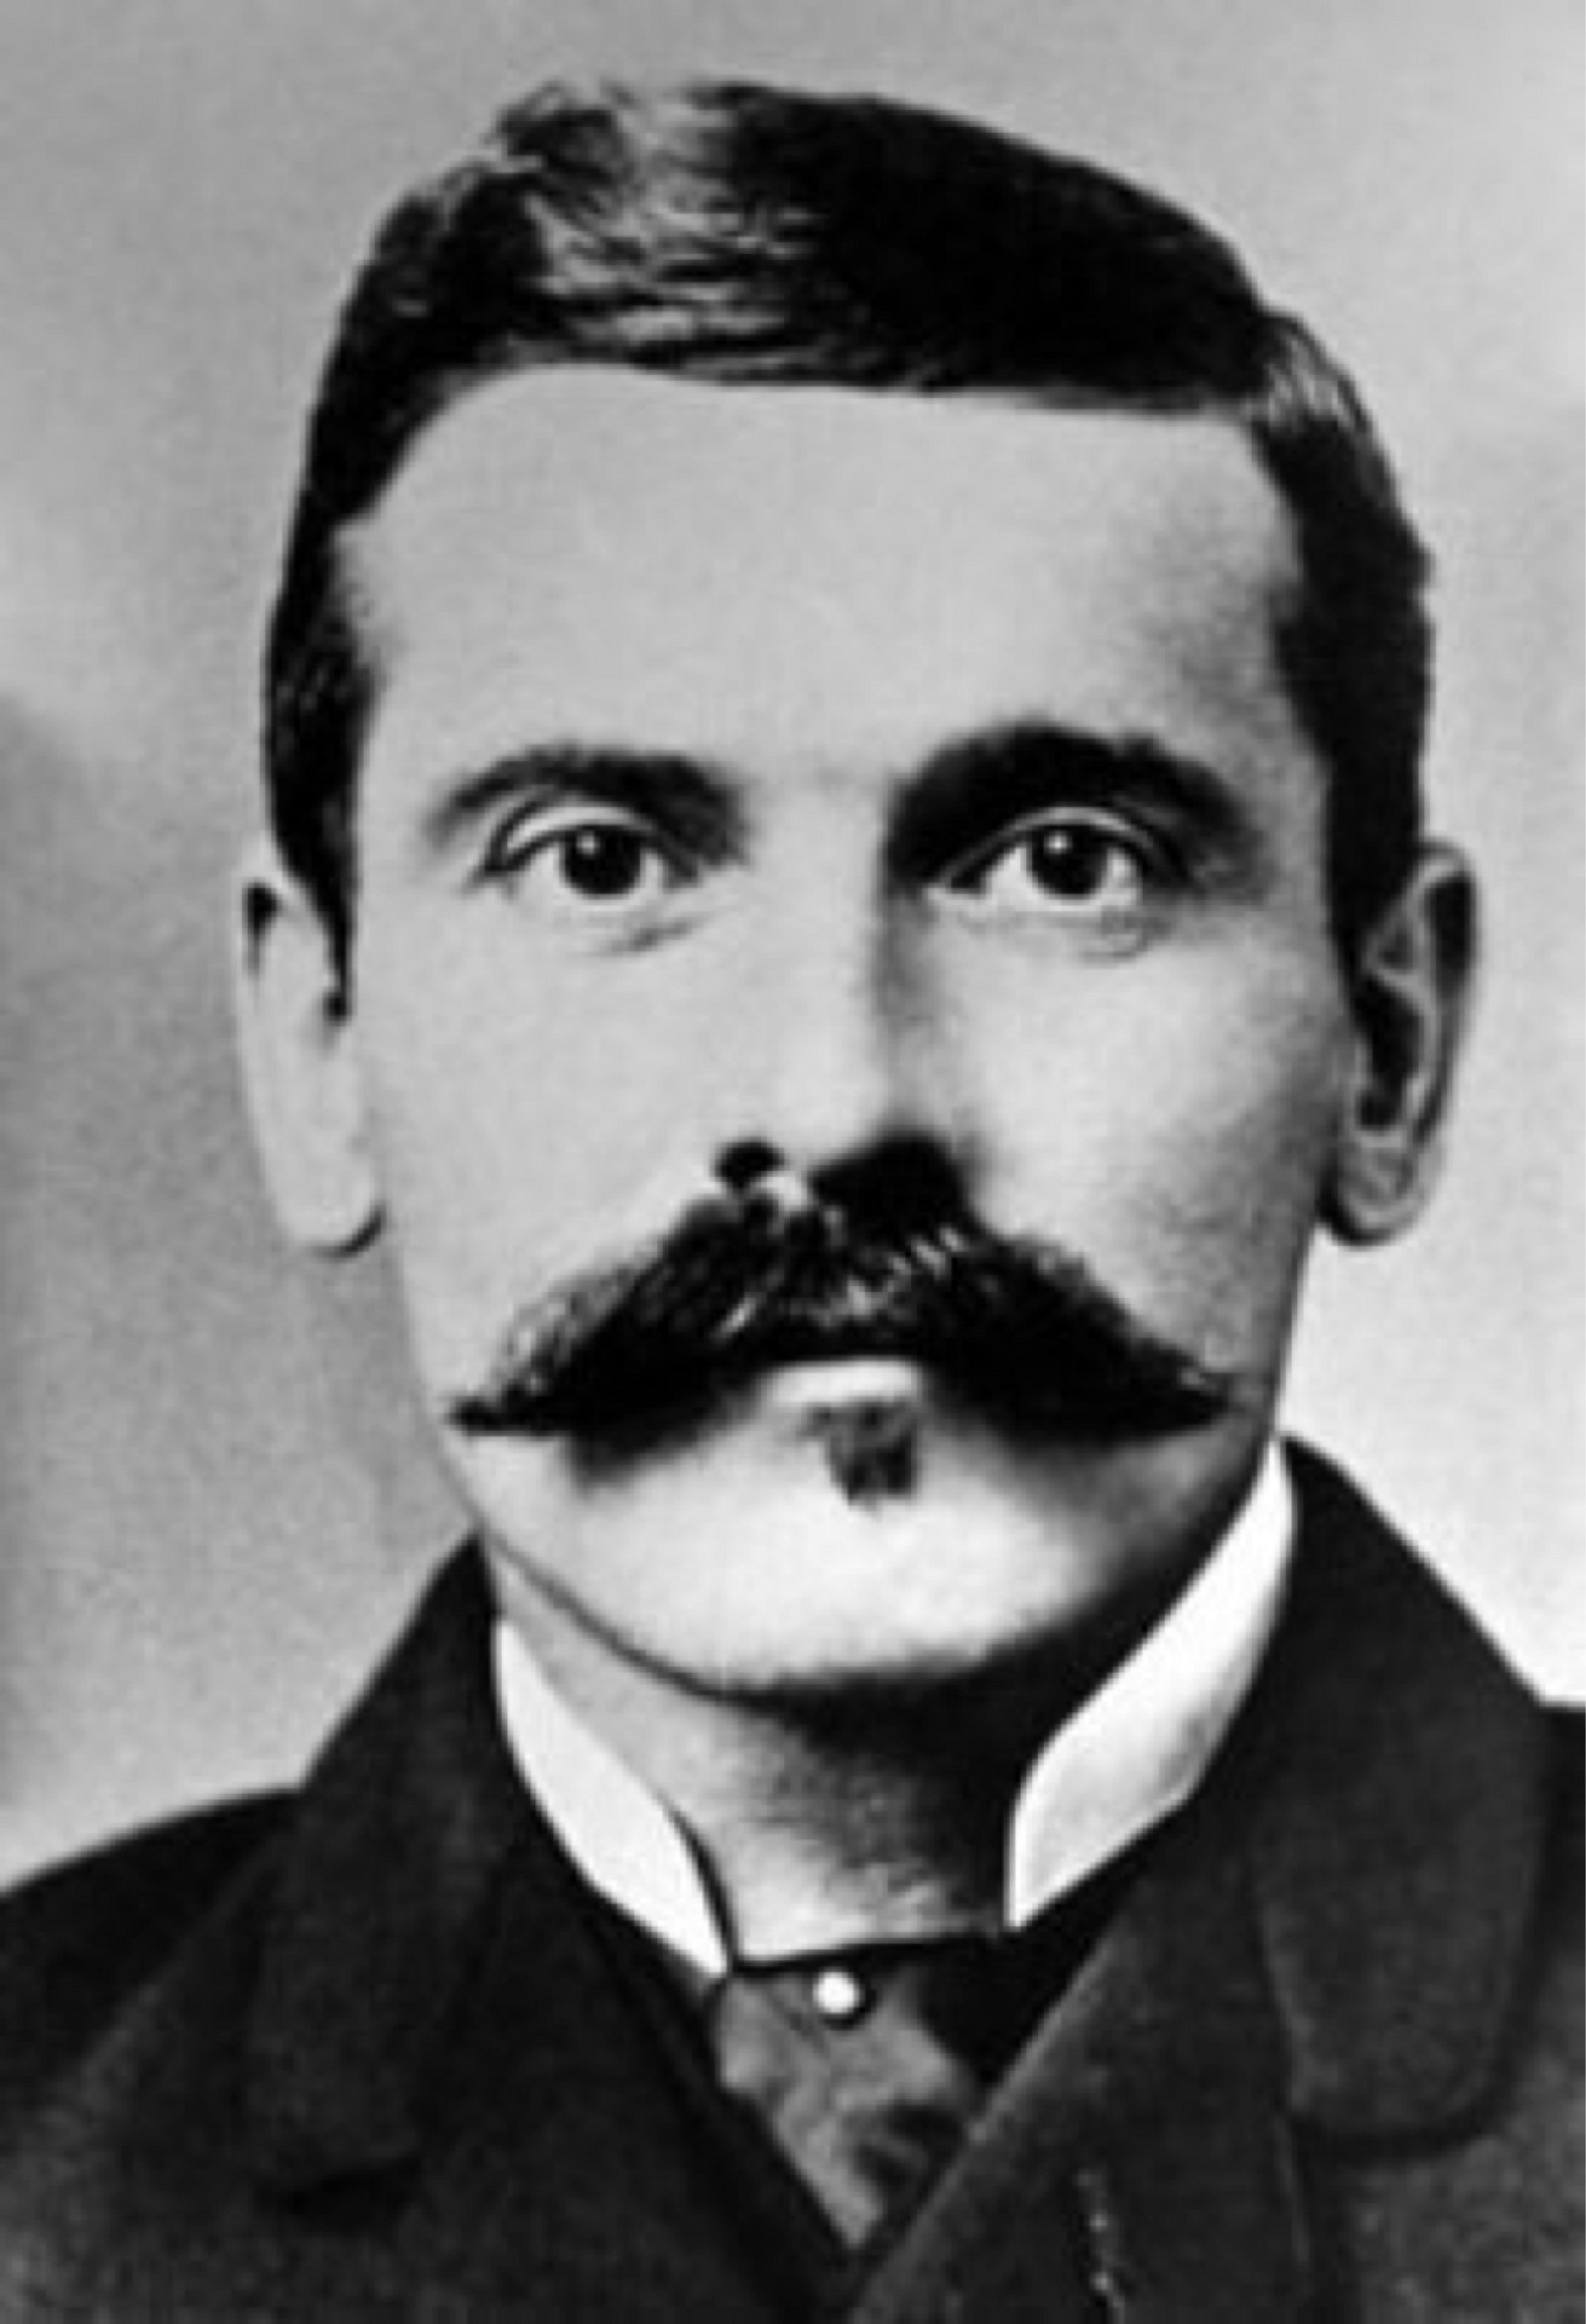 searching for the doc holliday within myself the writing cooperative